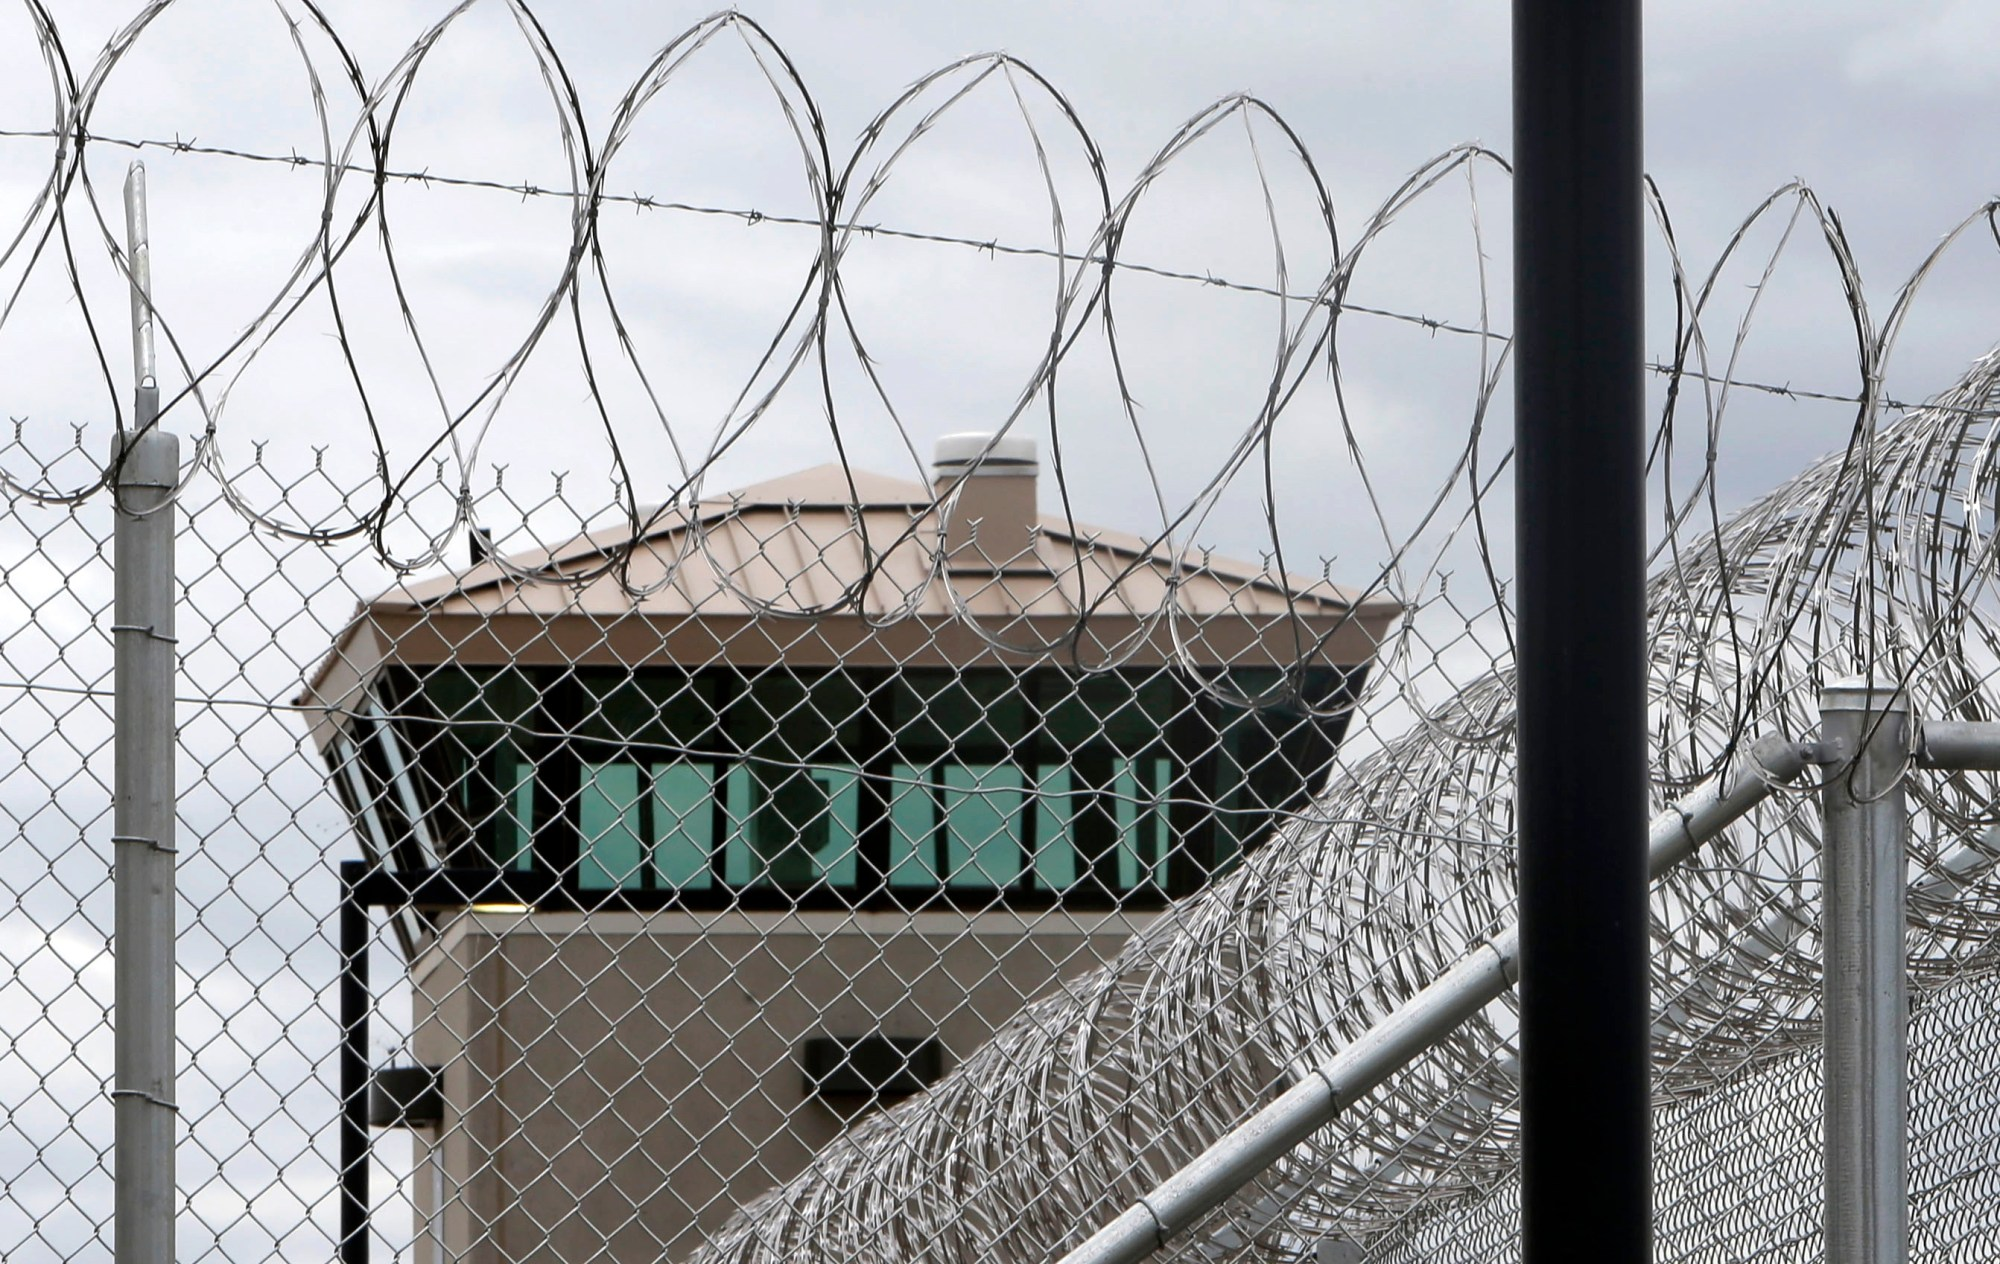 This June 25, 2013 file photo shows a guard tower over the fence surrounding the new California Correctional Health Care Facility in Stockton, Calif. (AP Photo/Rich Pedroncelli,File)